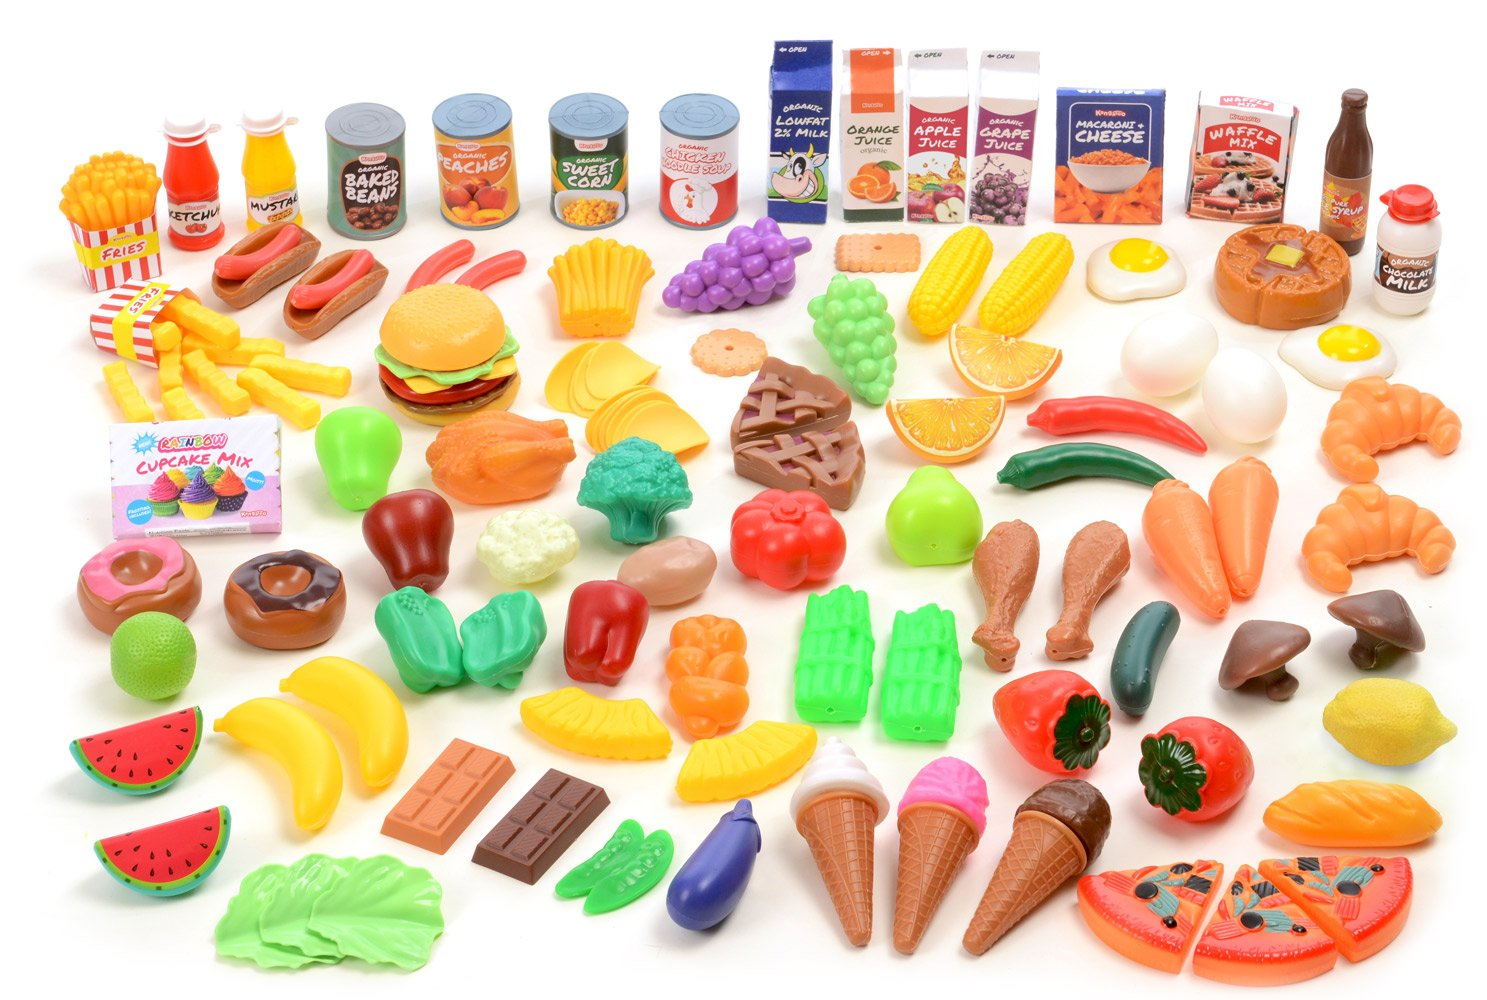 Lego Toy Food : Fun play food set for kids kitchen cooking kid toy pretend